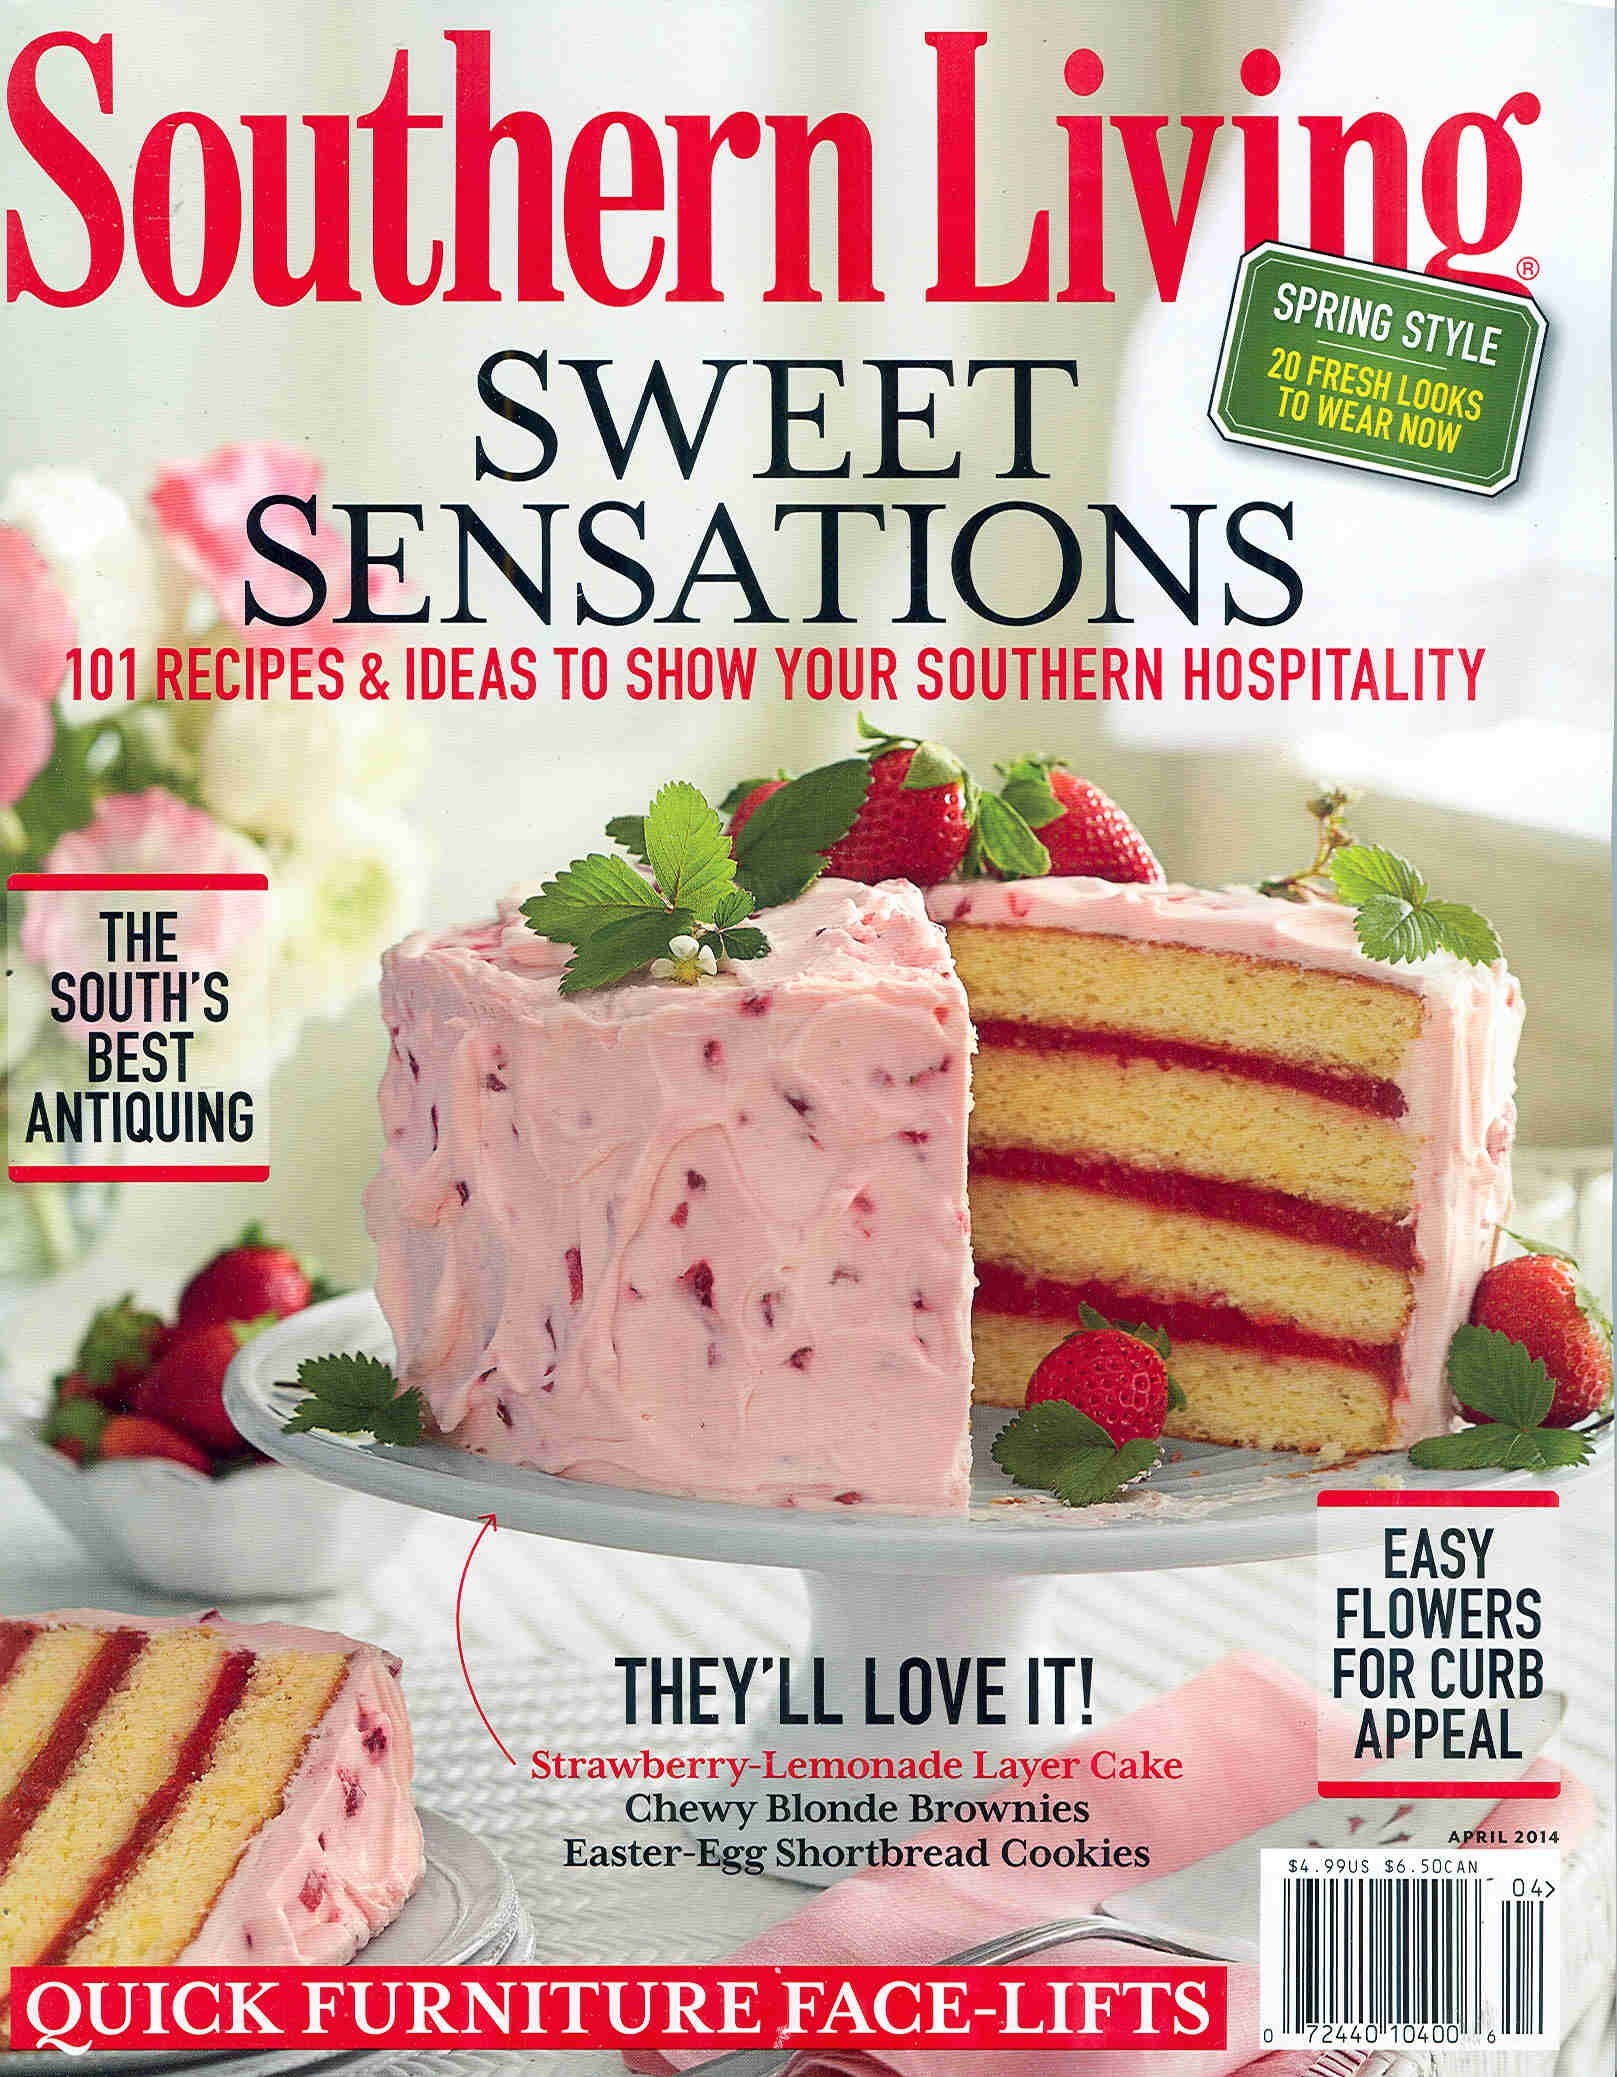 Living Room Southern Living Pictures southern living marissa hermanson april 2014 cover